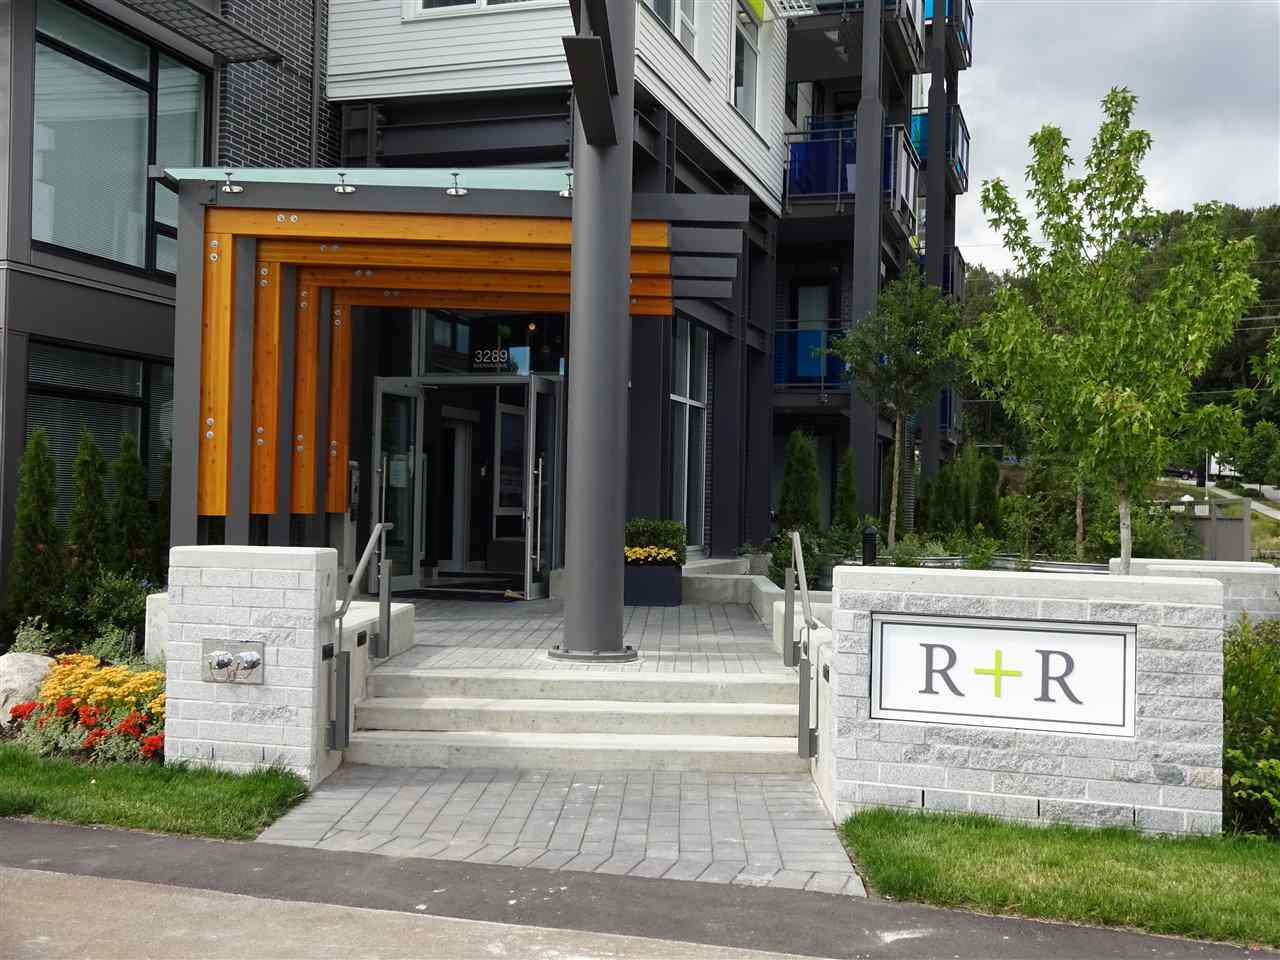 "Main Photo: 604 3289 RIVERWALK Avenue in Vancouver: Champlain Heights Condo for sale in ""R + R by Polygon"" (Vancouver East)  : MLS®# R2287716"